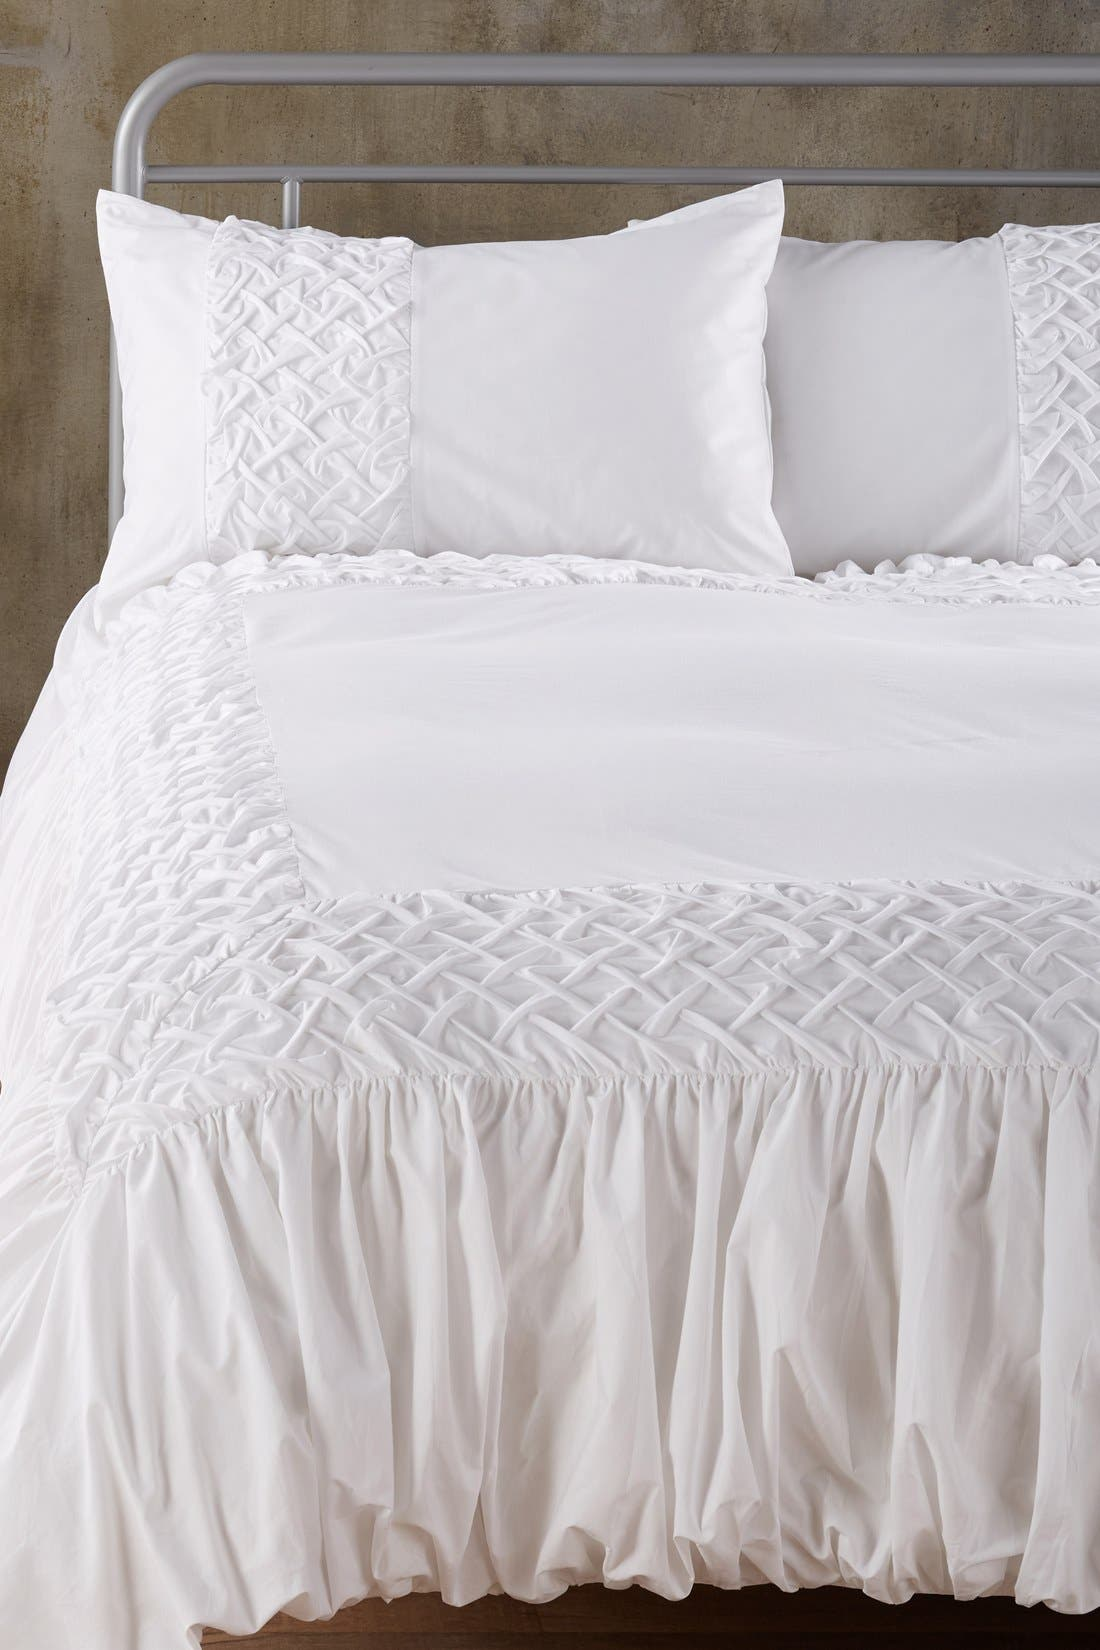 Main Image - Nordstrom at Home 'Cady' Smocked Weave Duvet Cover